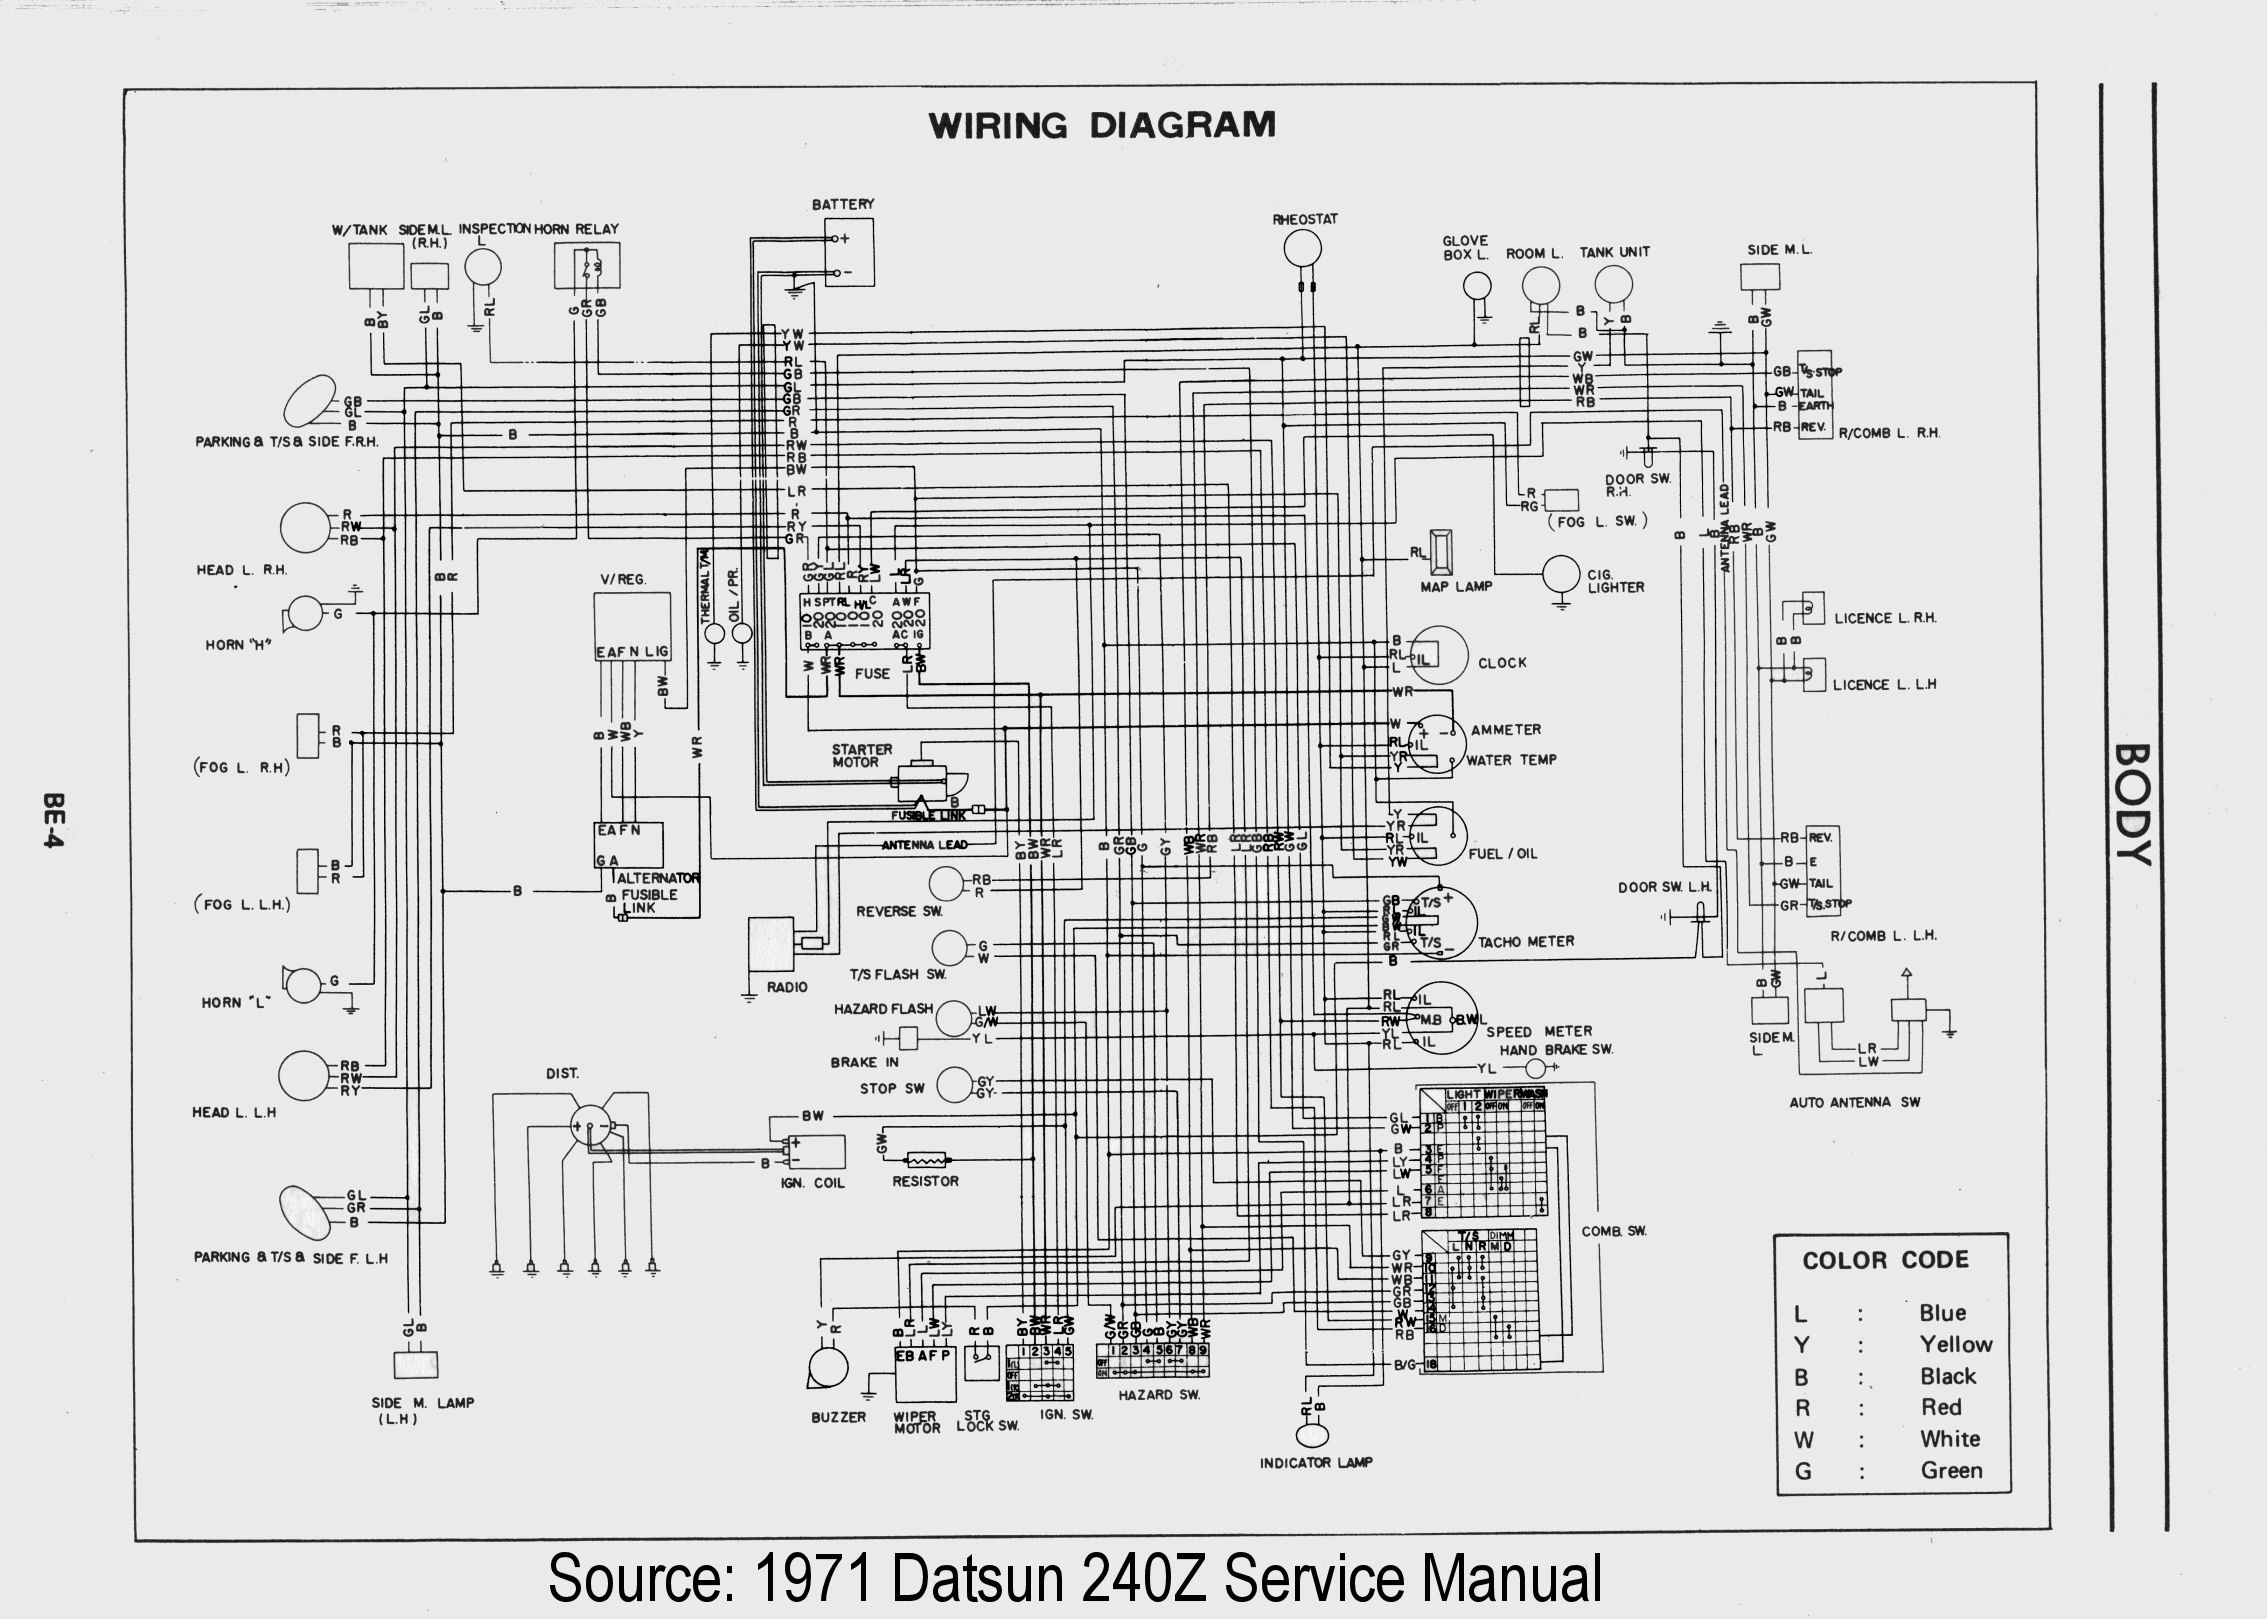 Wiring Diagram HiRes 2 240z wiring diagram 73 240z wiring diagram \u2022 wiring diagrams j In a 98 Dodge Dakota Wiring Harness at bakdesigns.co